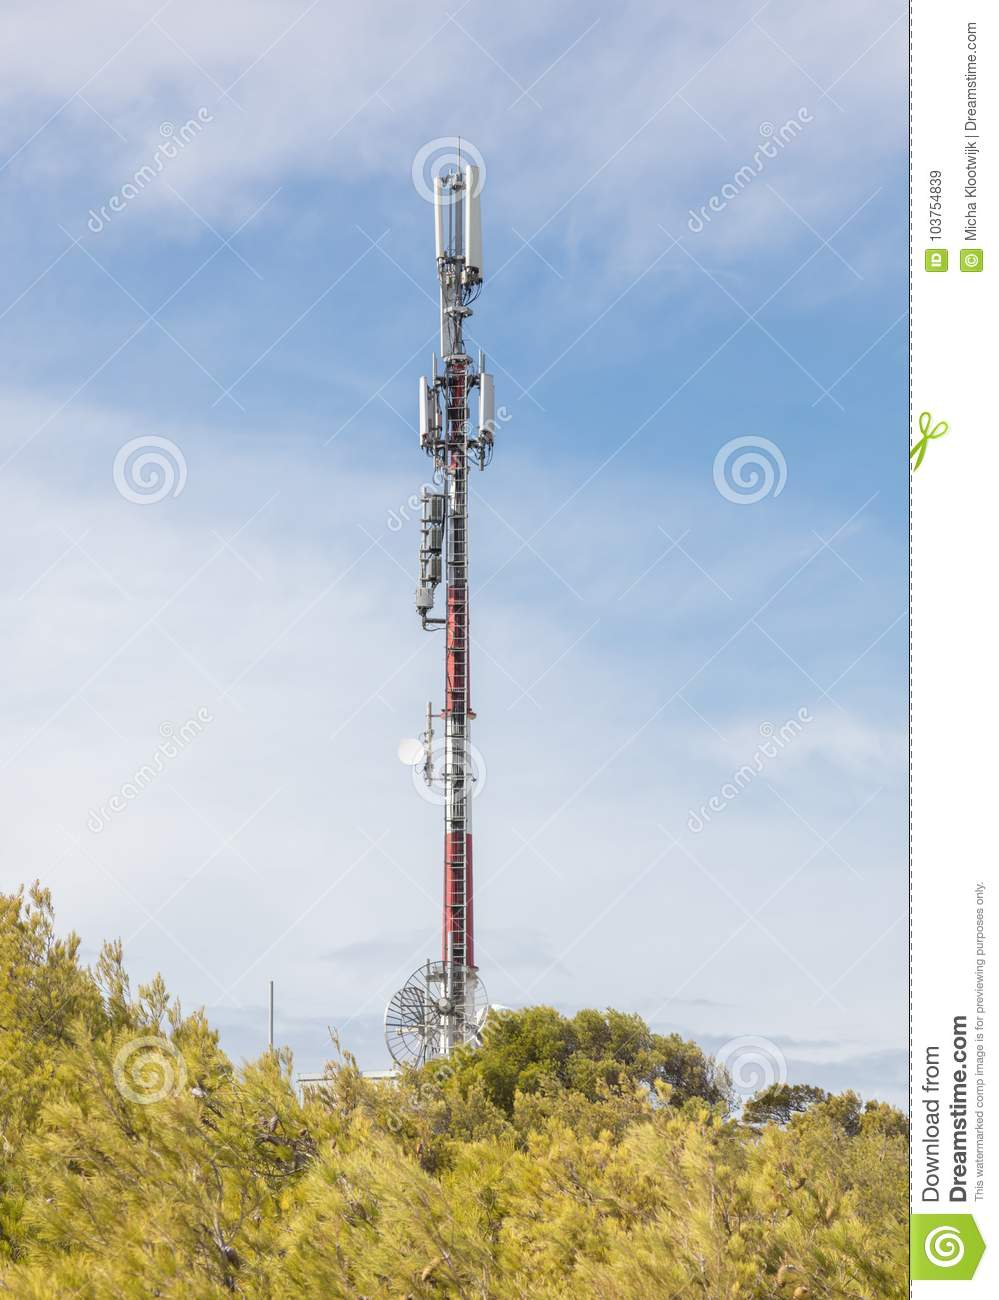 Tower Communication Sky  TV Tower On A Background Of Blue